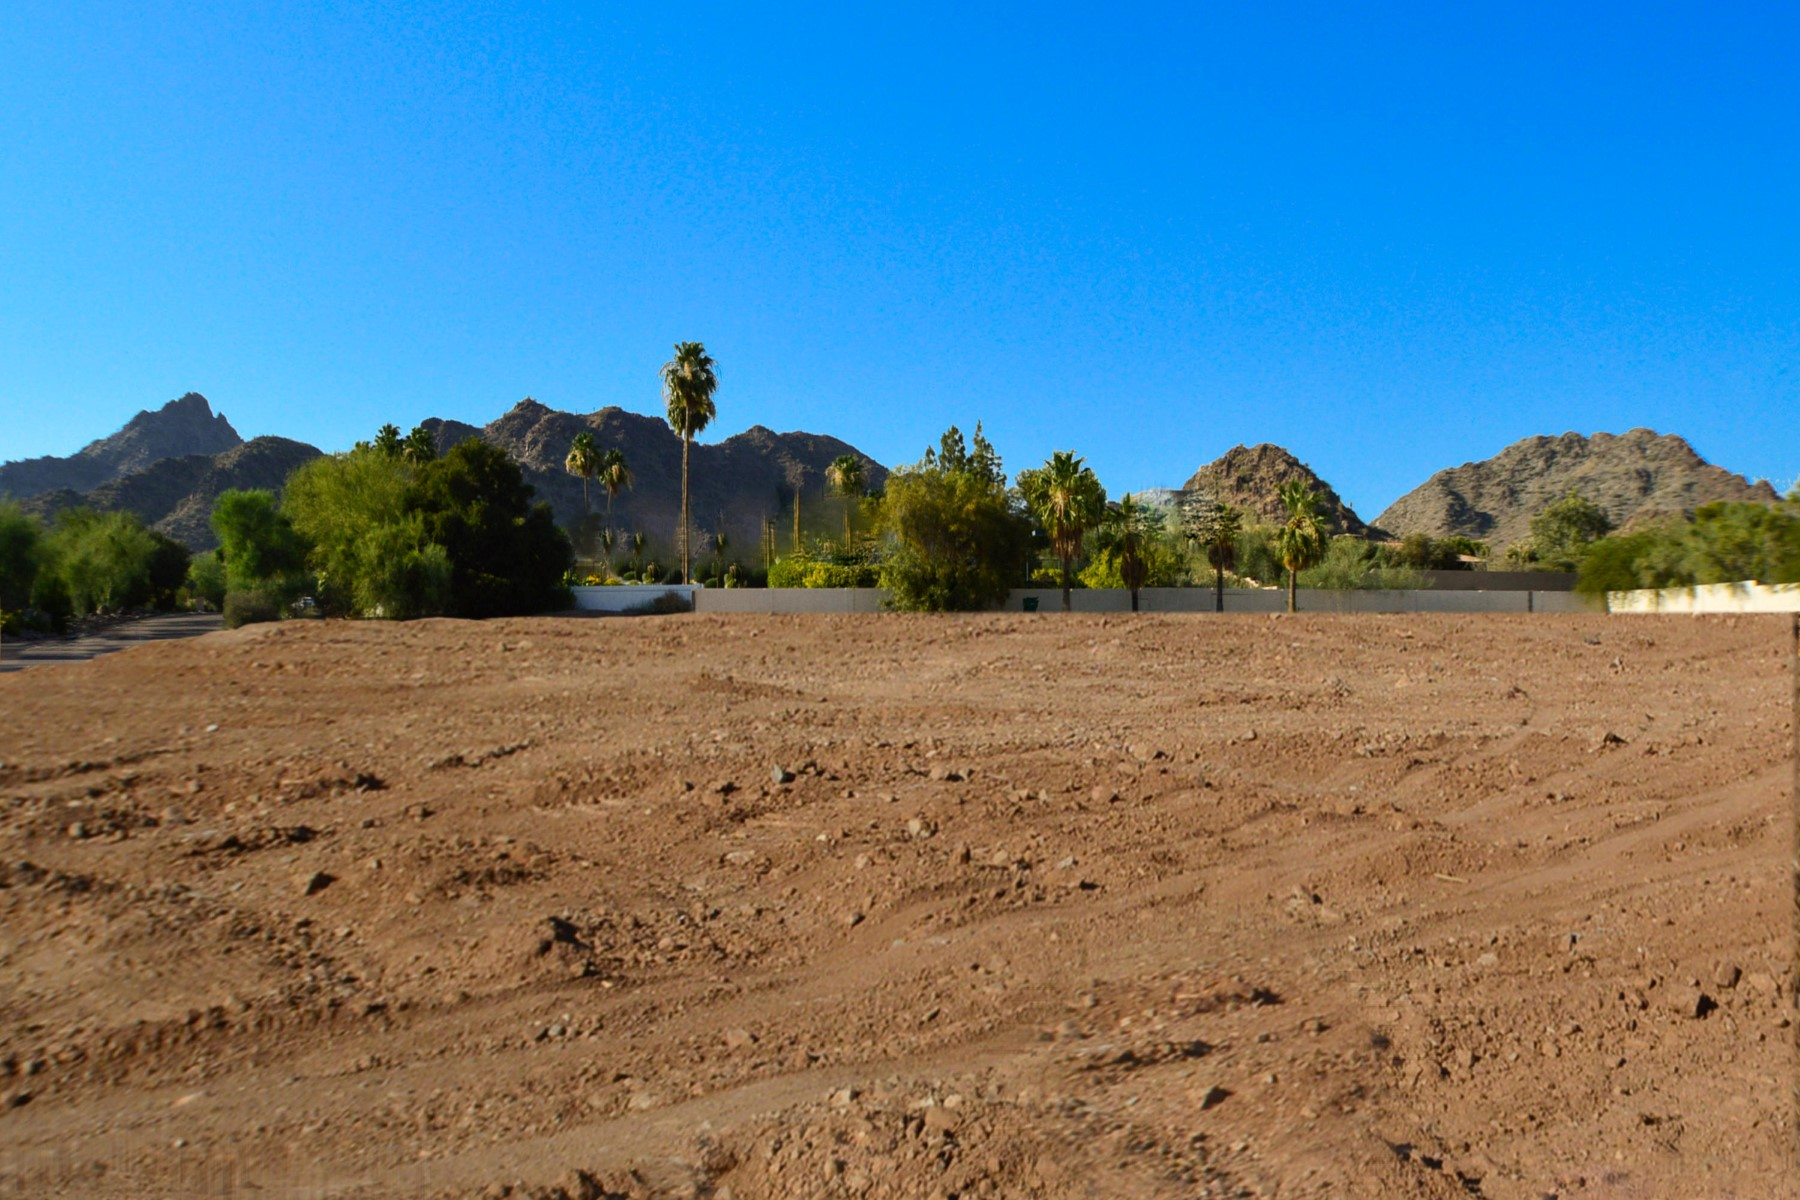 Terreno por un Venta en Extremely private and quiet 1.03 acre lot 6109 N 33Rrd St #23 Paradise Valley, Arizona, 85253 Estados Unidos